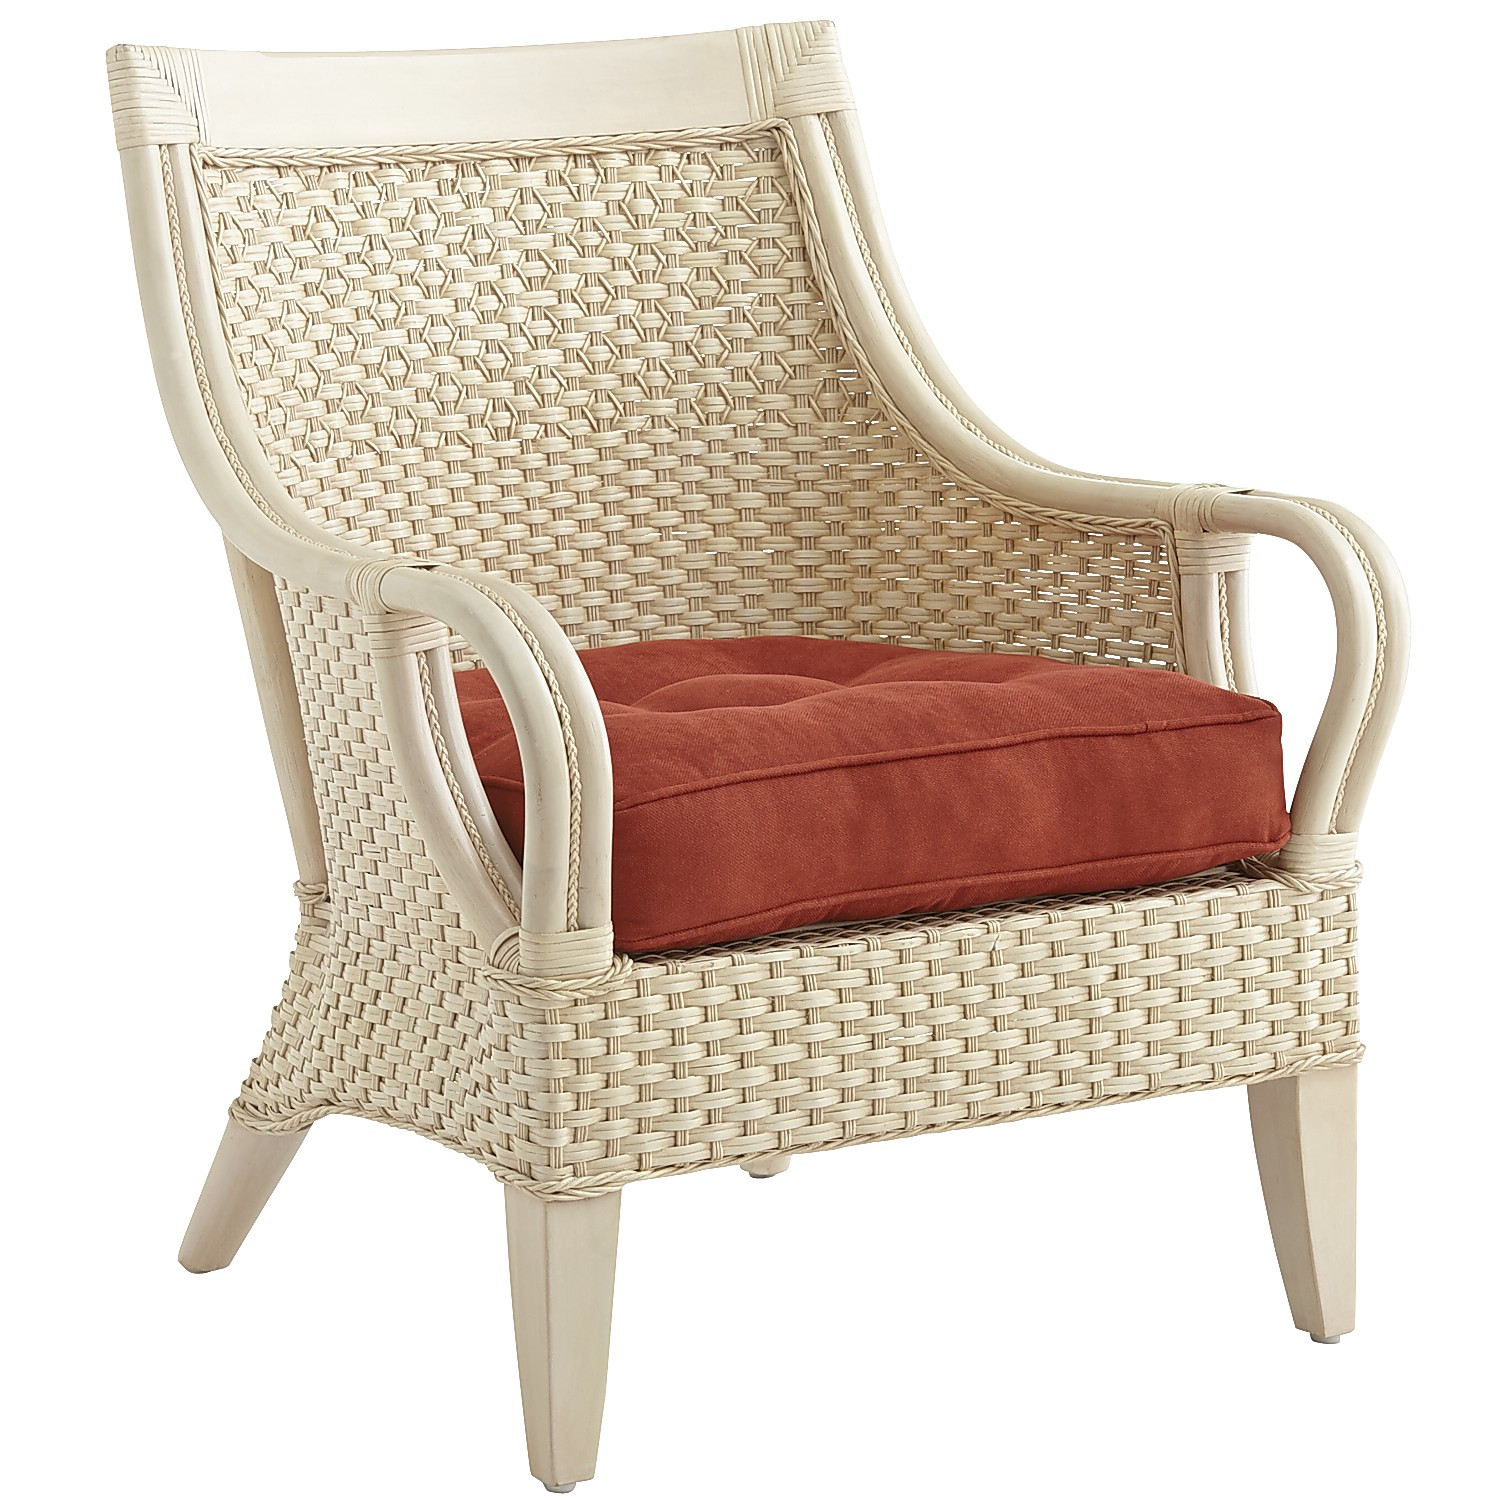 One Furniture: Pier 1 Imports Recalls Temani Wicker Furniture Due To